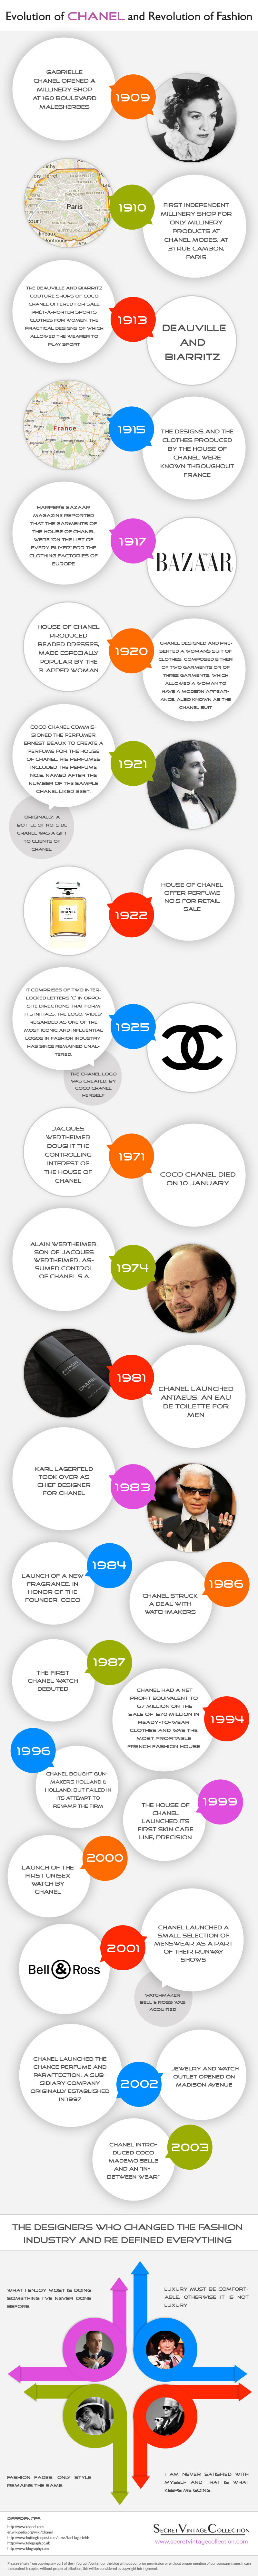 Infographic: Evolution of Channel and Revolution of Fashion